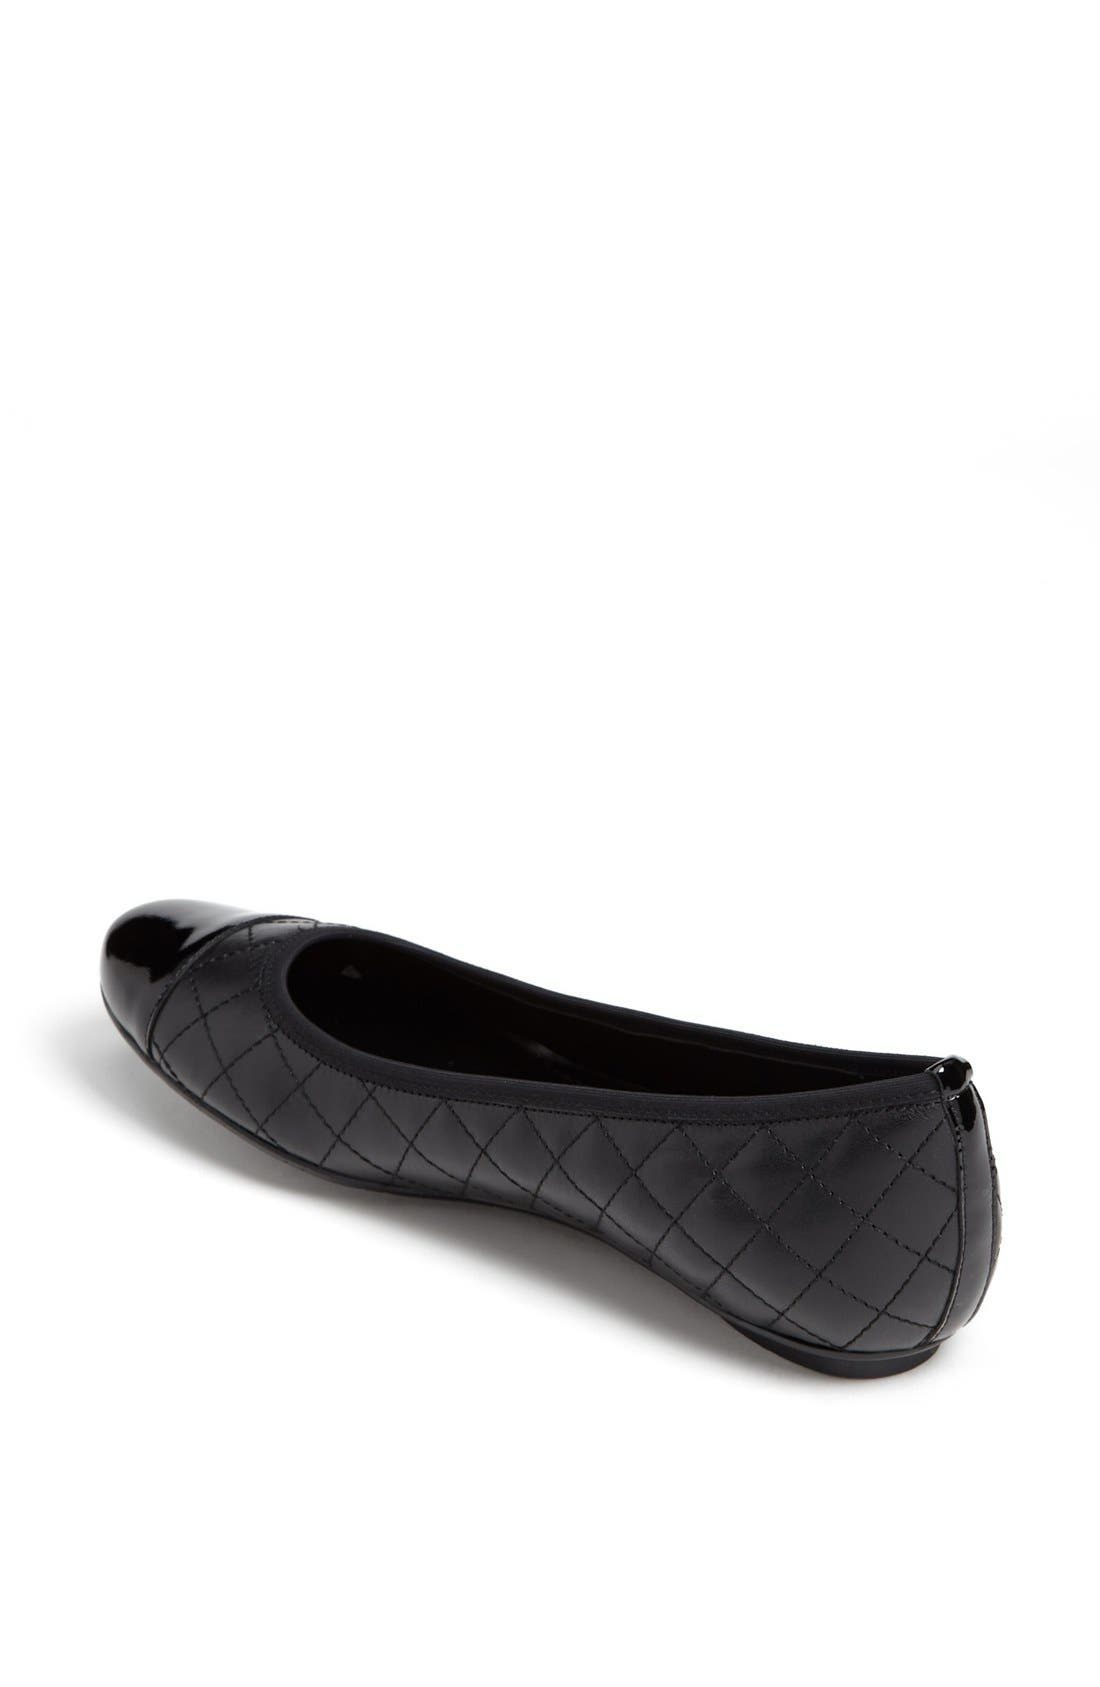 'Serene' Flat,                             Alternate thumbnail 4, color,                             BLACK NAPPA/ BLACK PATENT